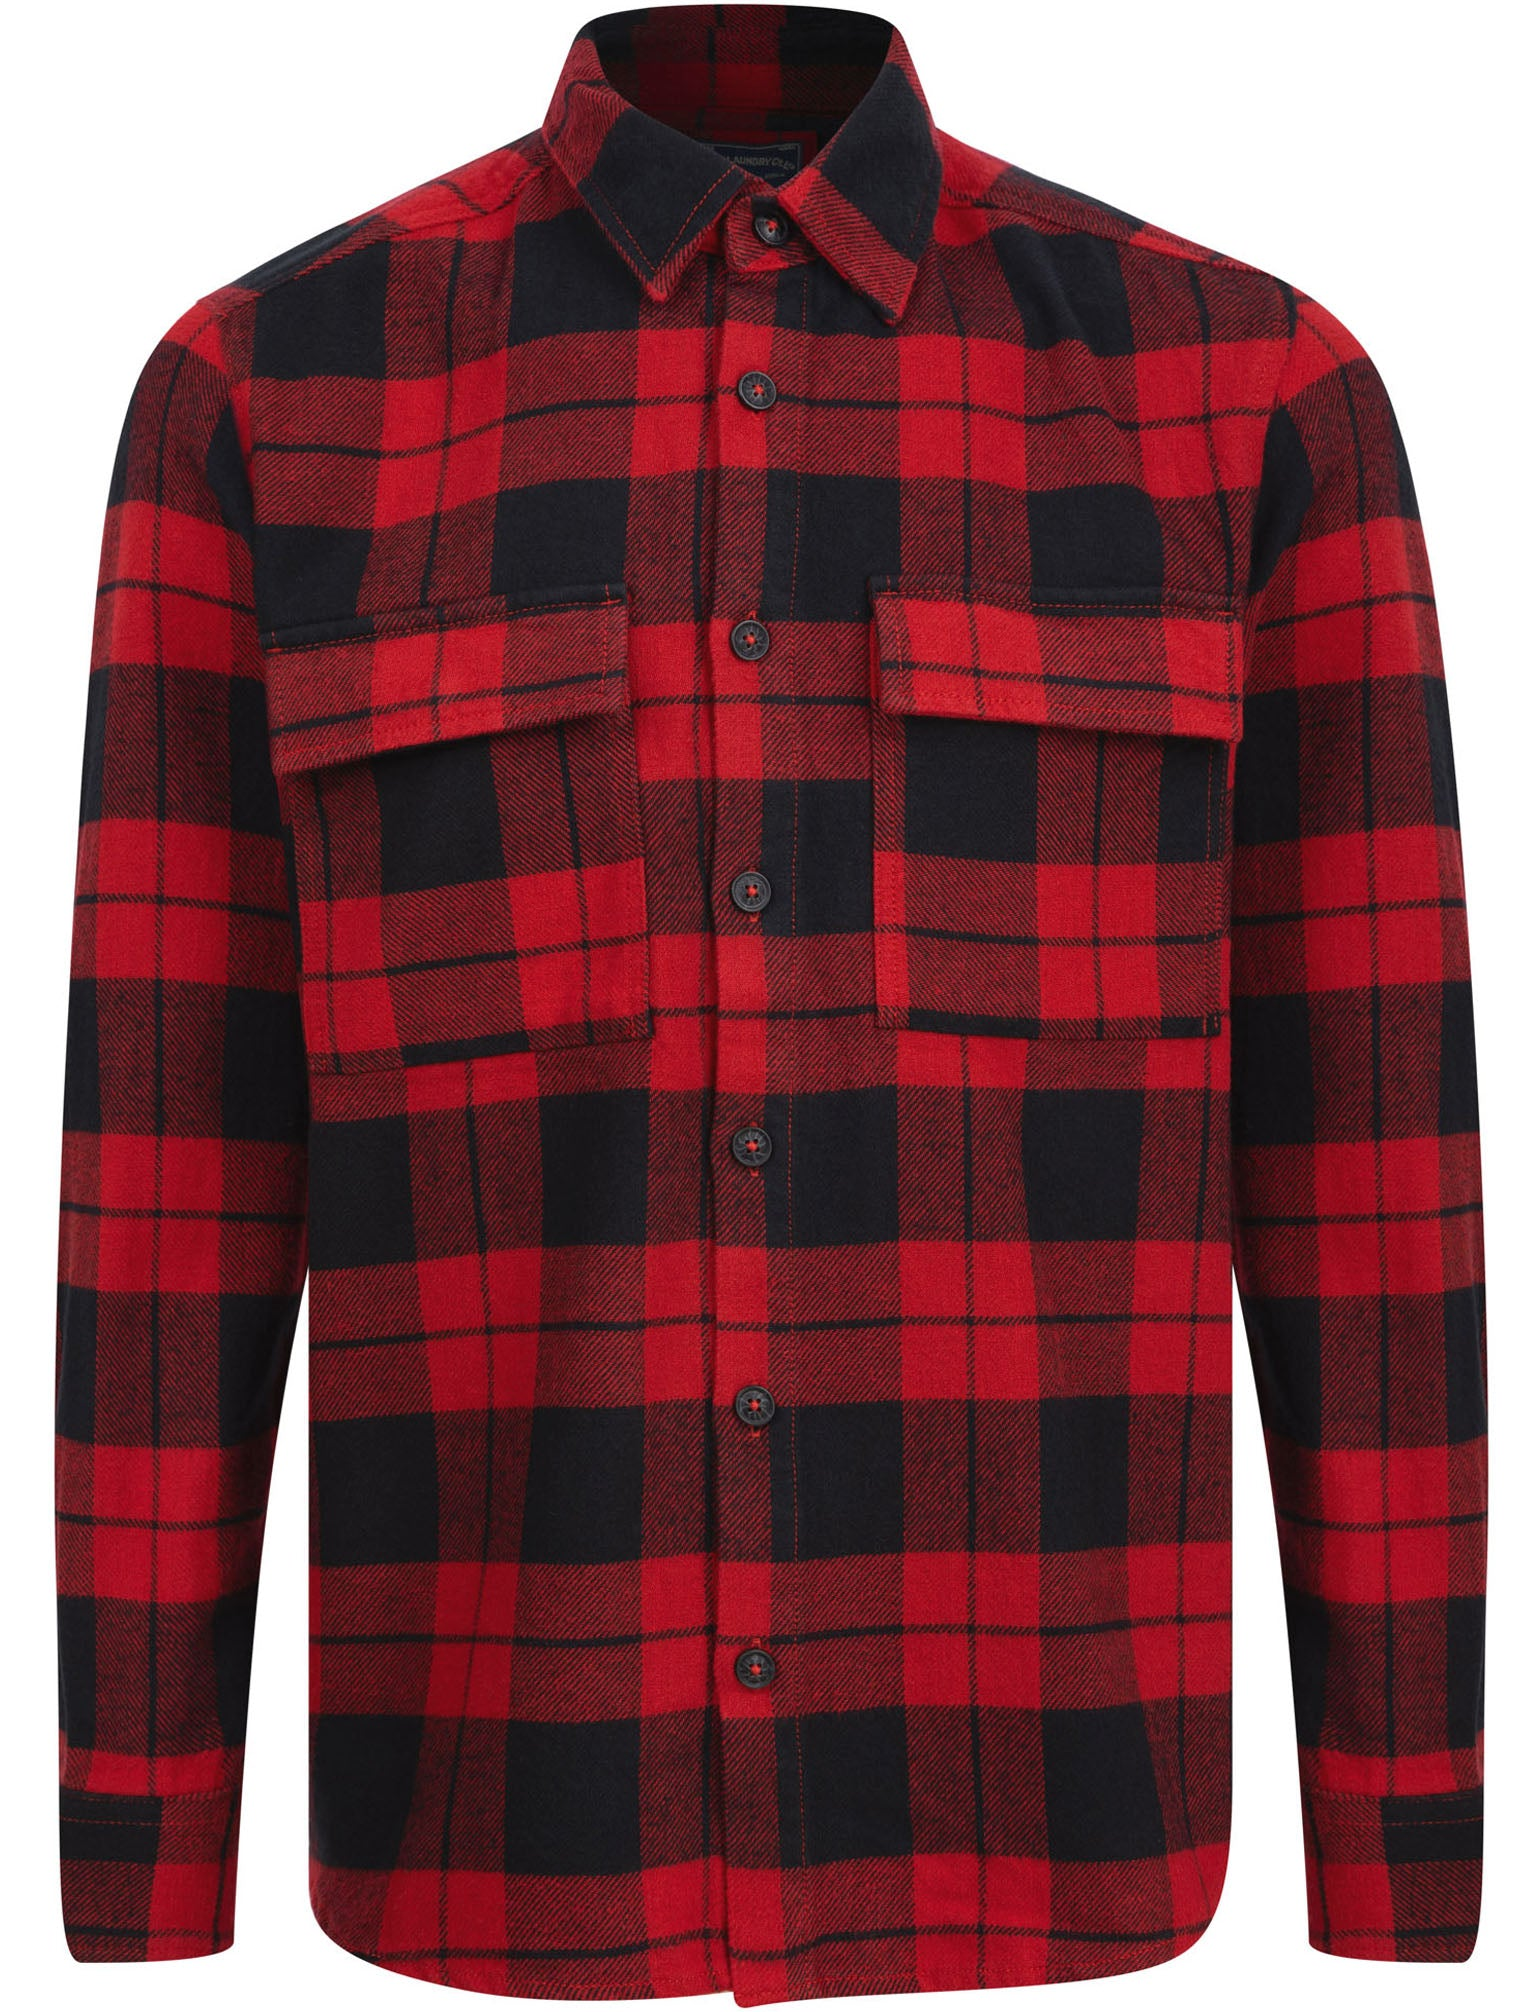 Men's Vintage Workwear Inspired Clothing Shirts Dunham Heavy Cotton Twill Checked Over Shirt In Chilli Pepper Check - Tokyo Laundry  XXL - Tokyo Laundry £24.99 AT vintagedancer.com